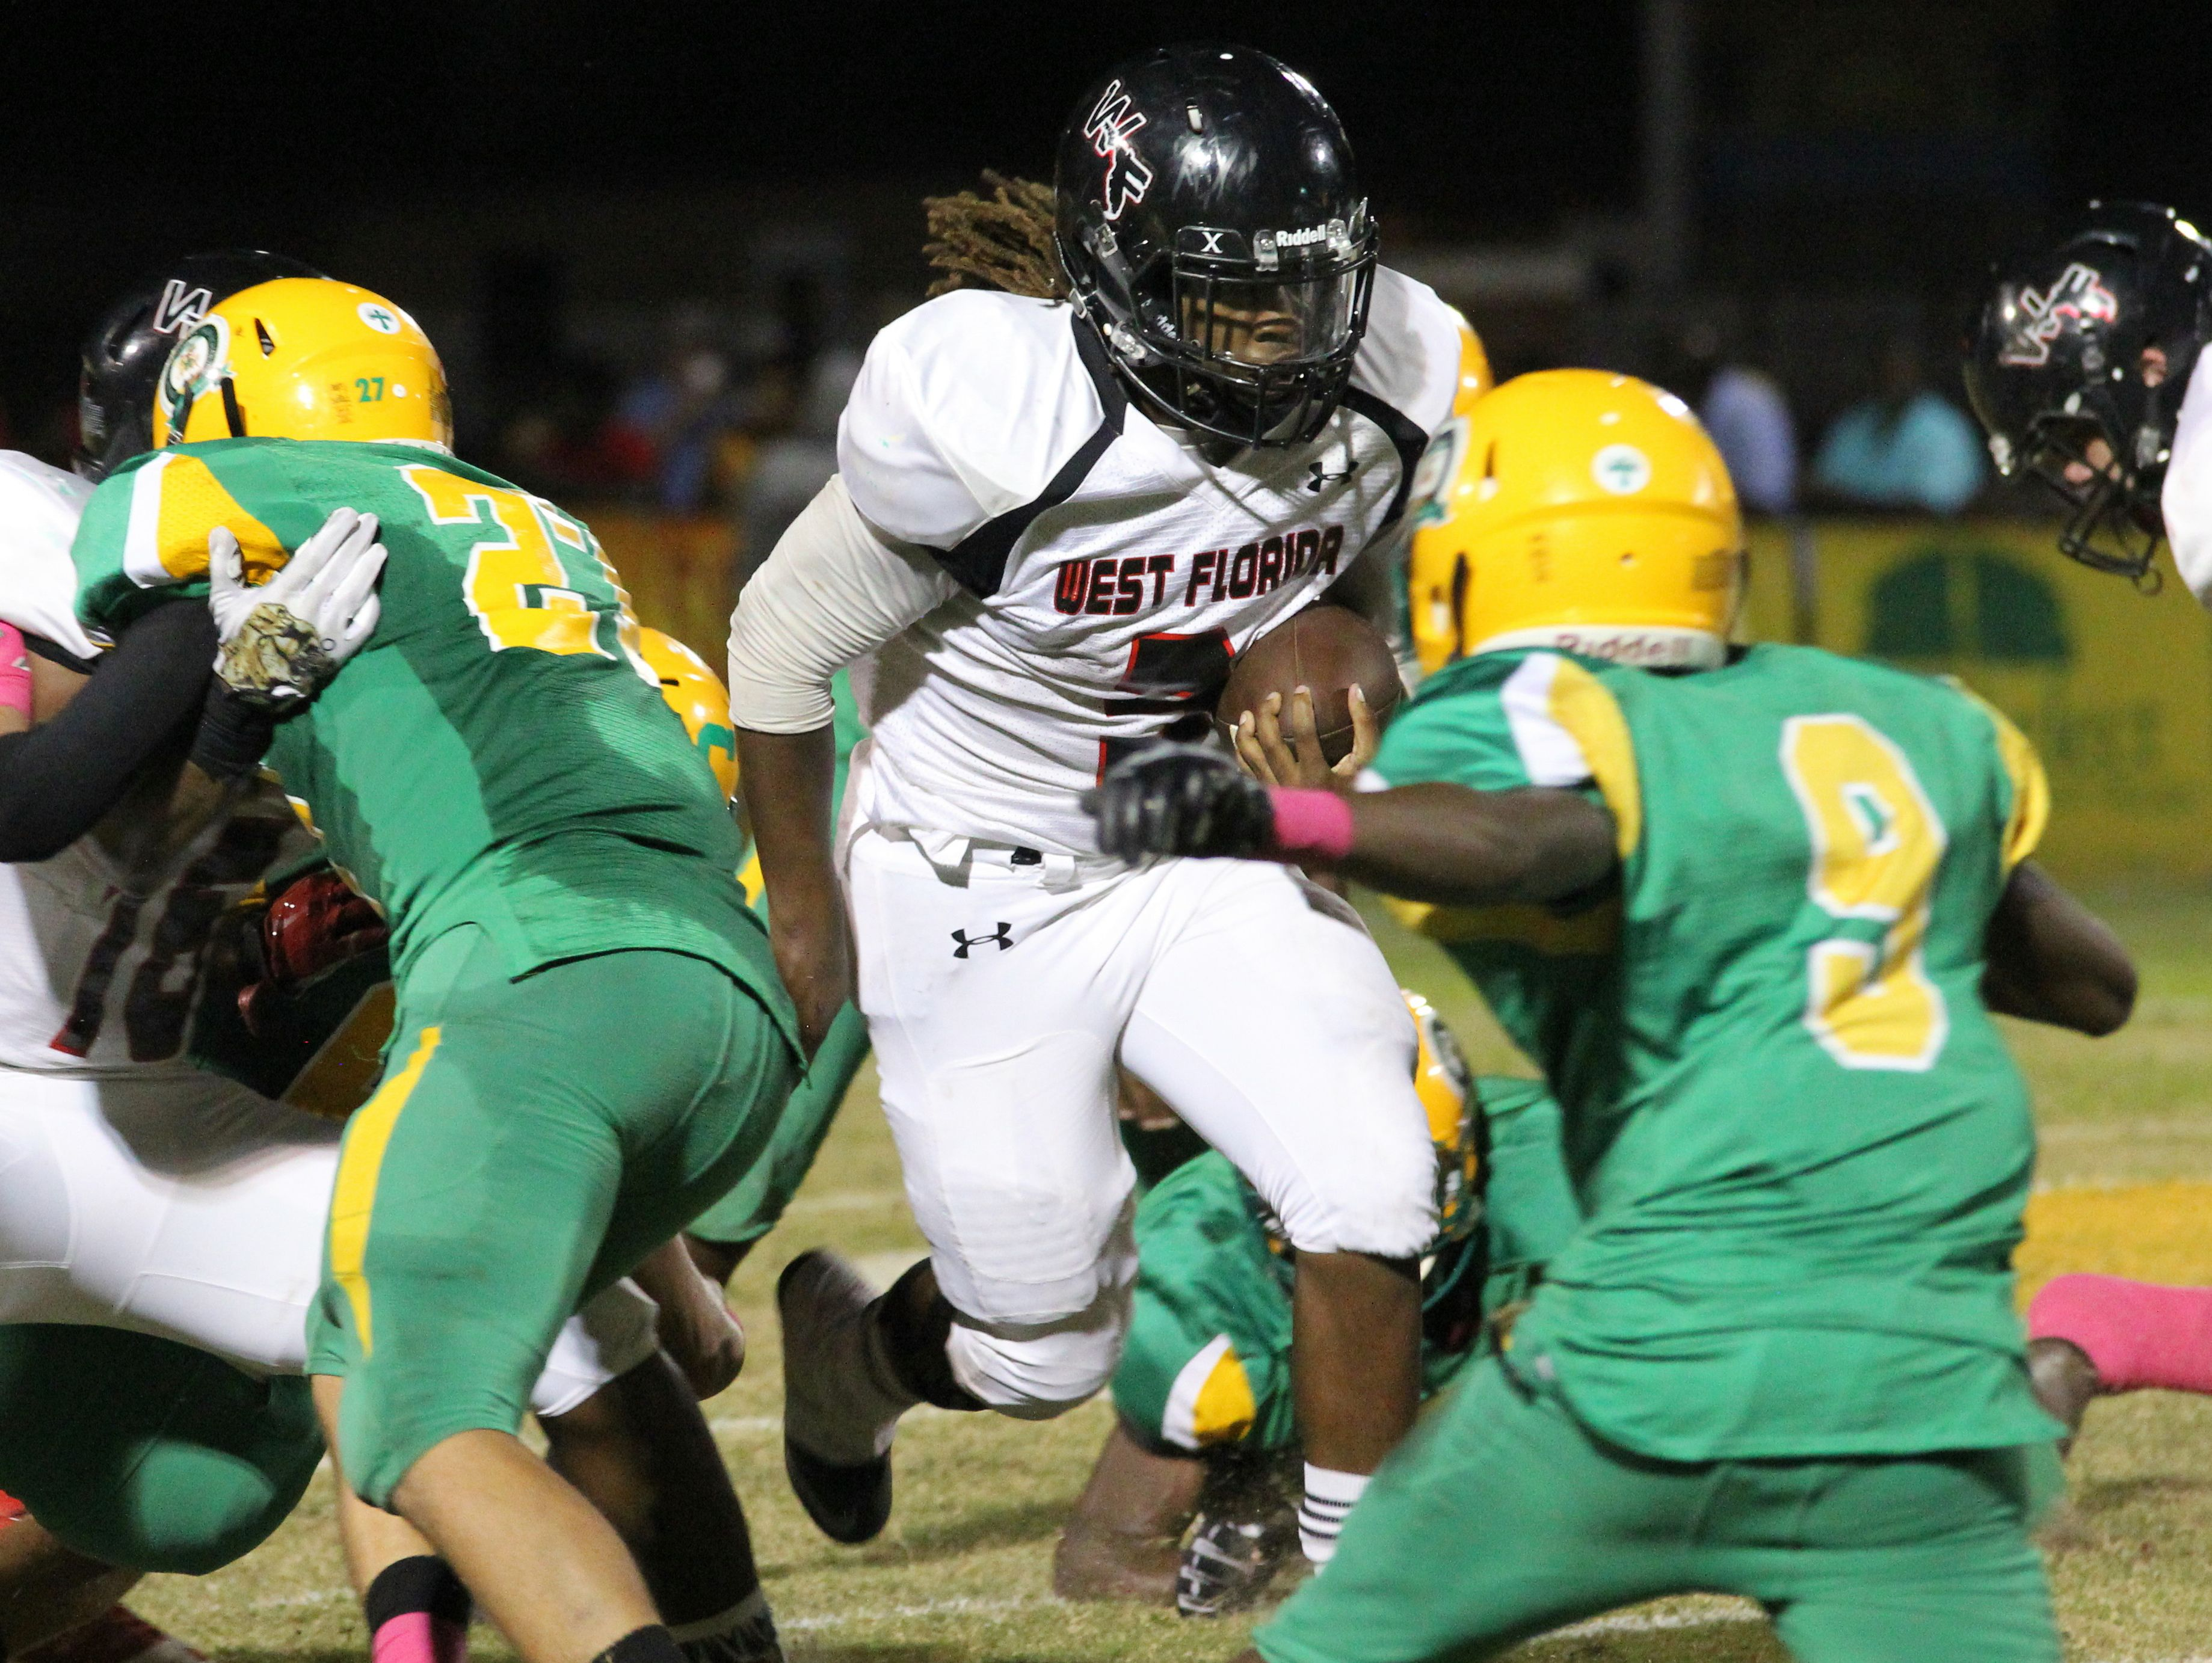 West Florida's Marquise Ross runs with the ball in the second quarter.